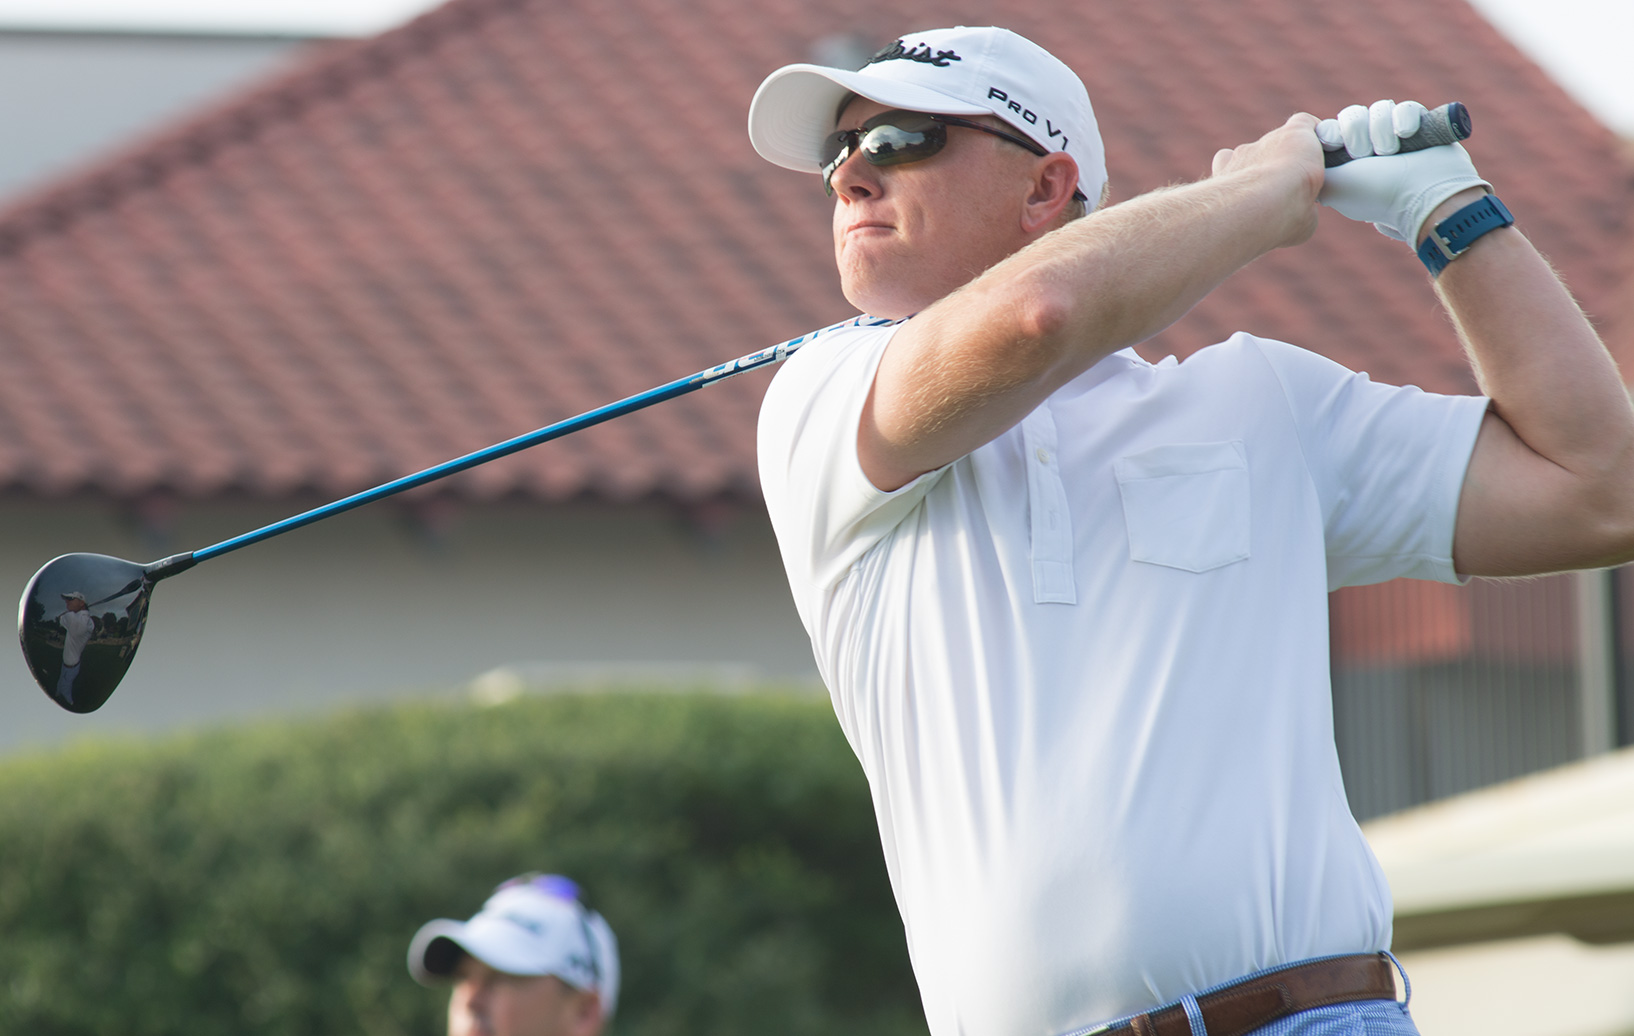 Cuzen, Norman Share Lead After Round One of the Northern Texas PGA Professional Championship